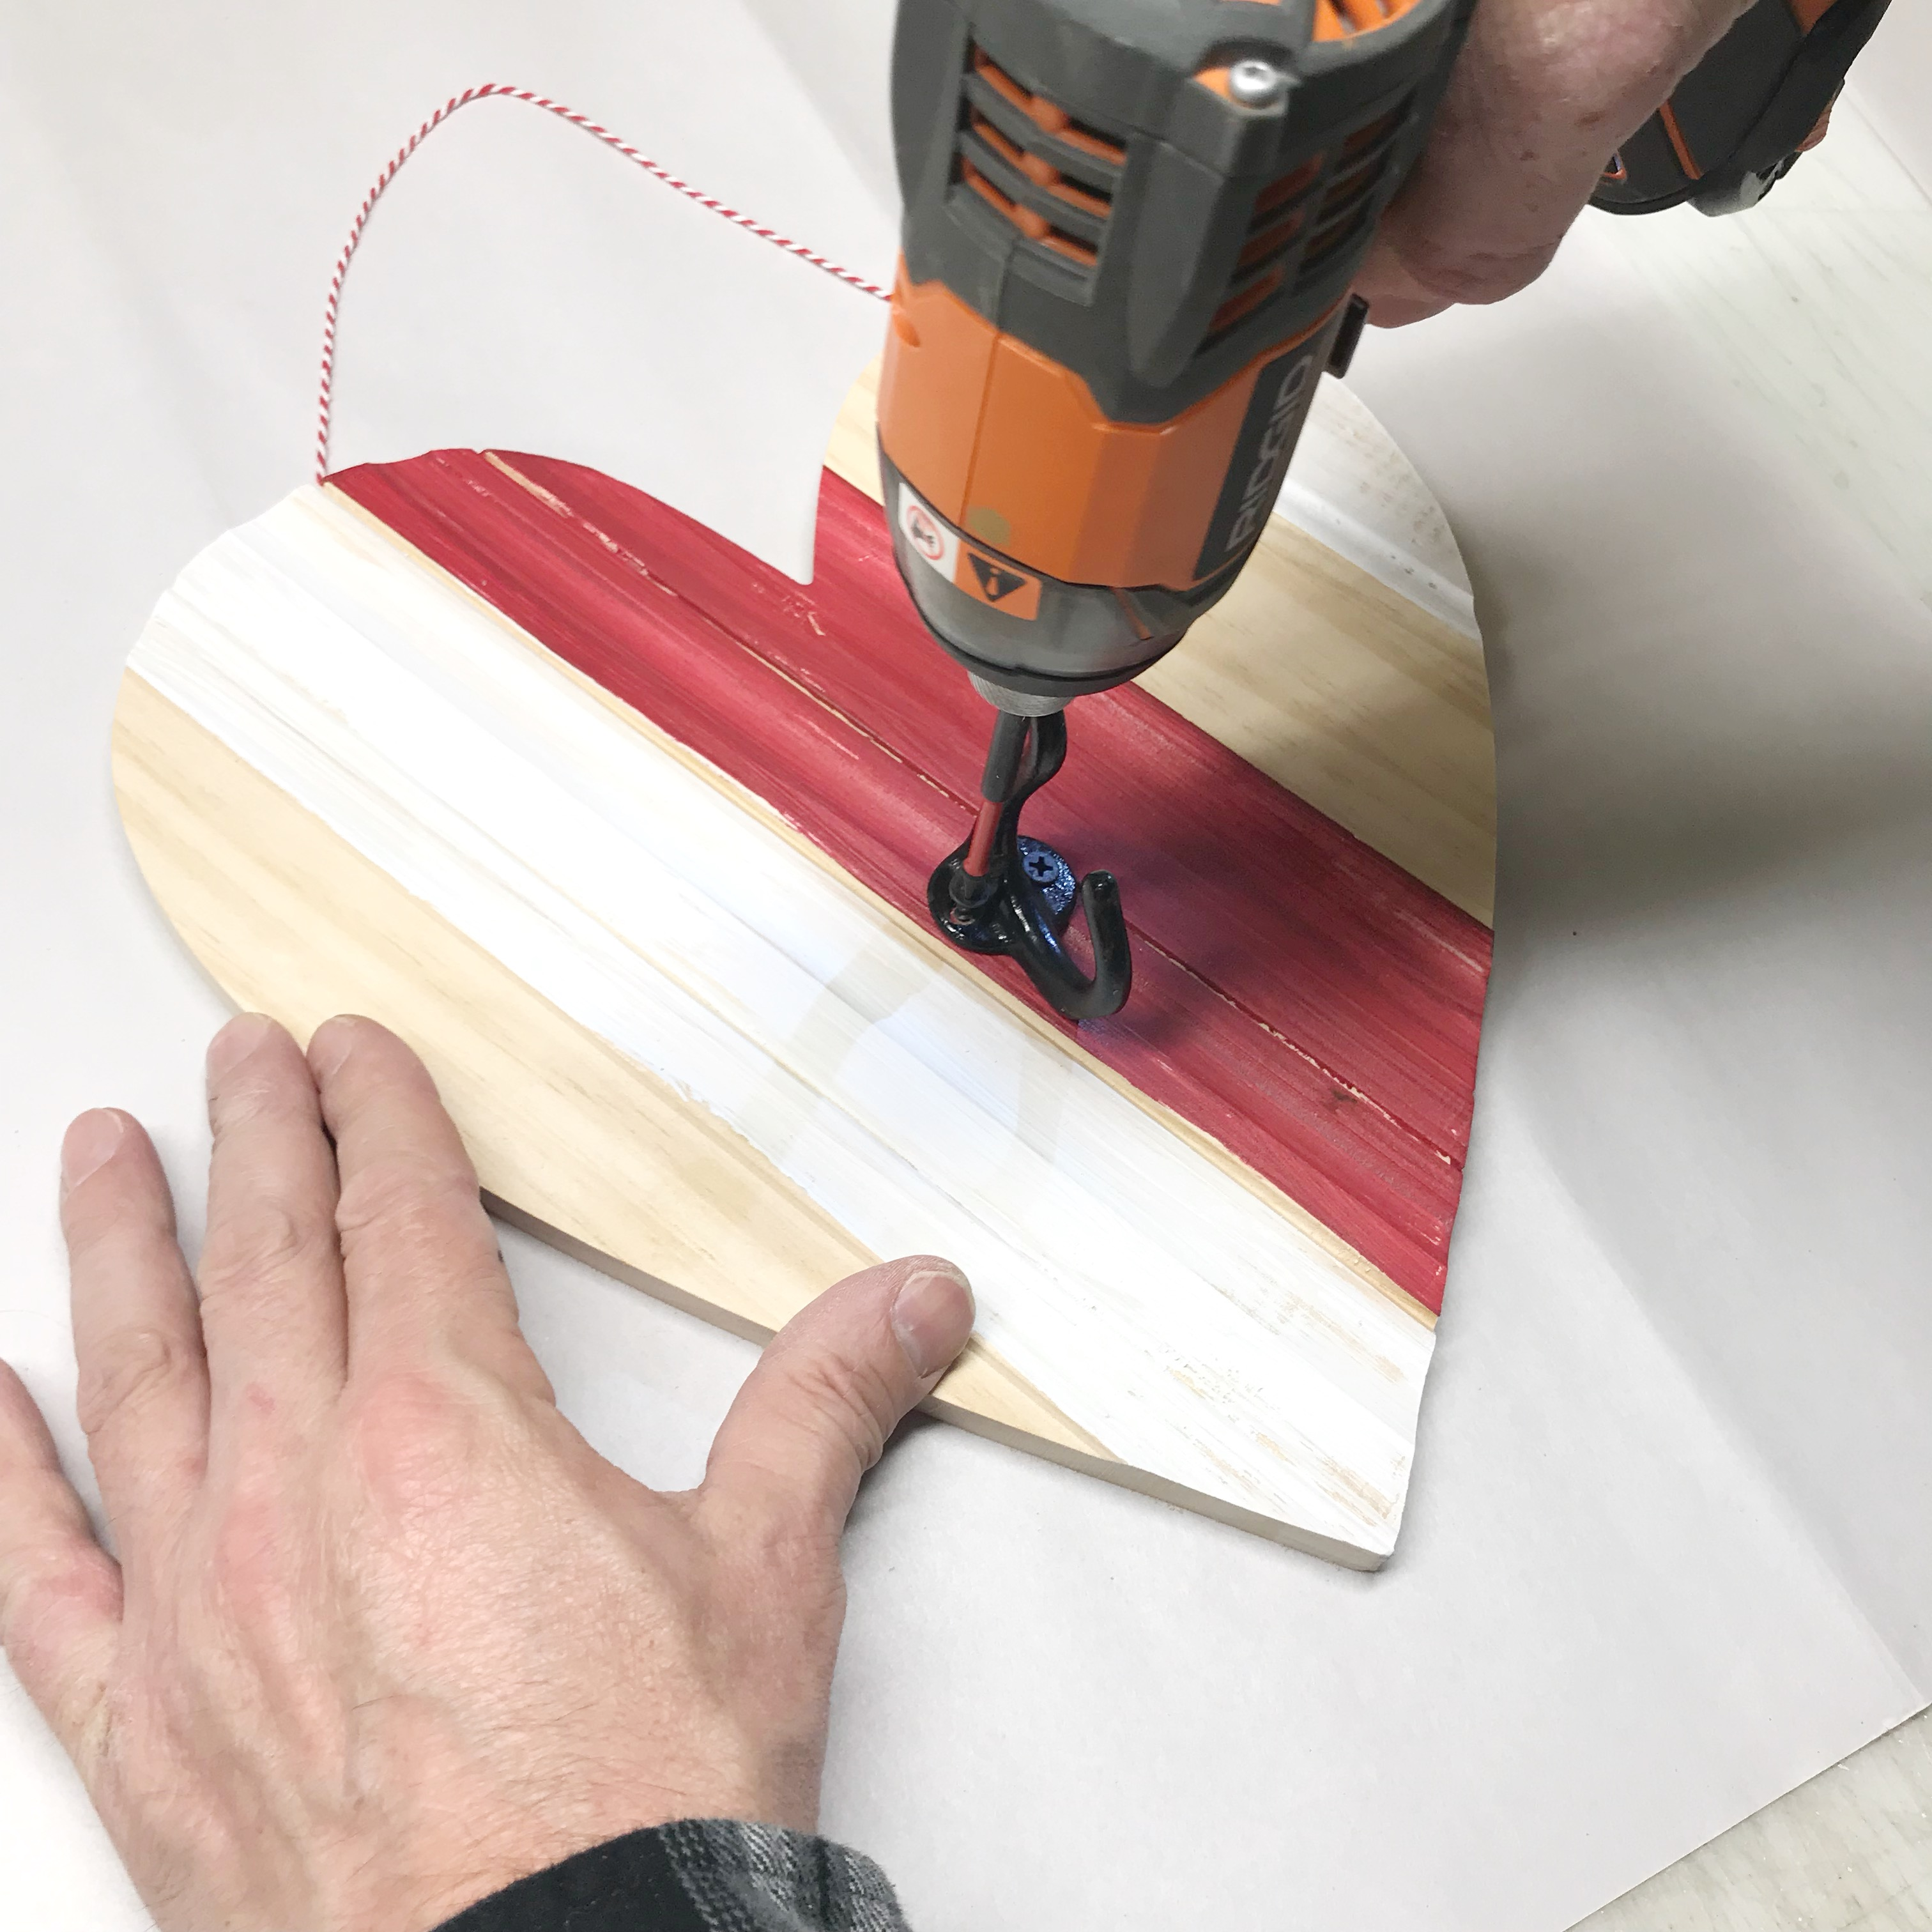 Drilling coat hook into striped heart shaped wall decor